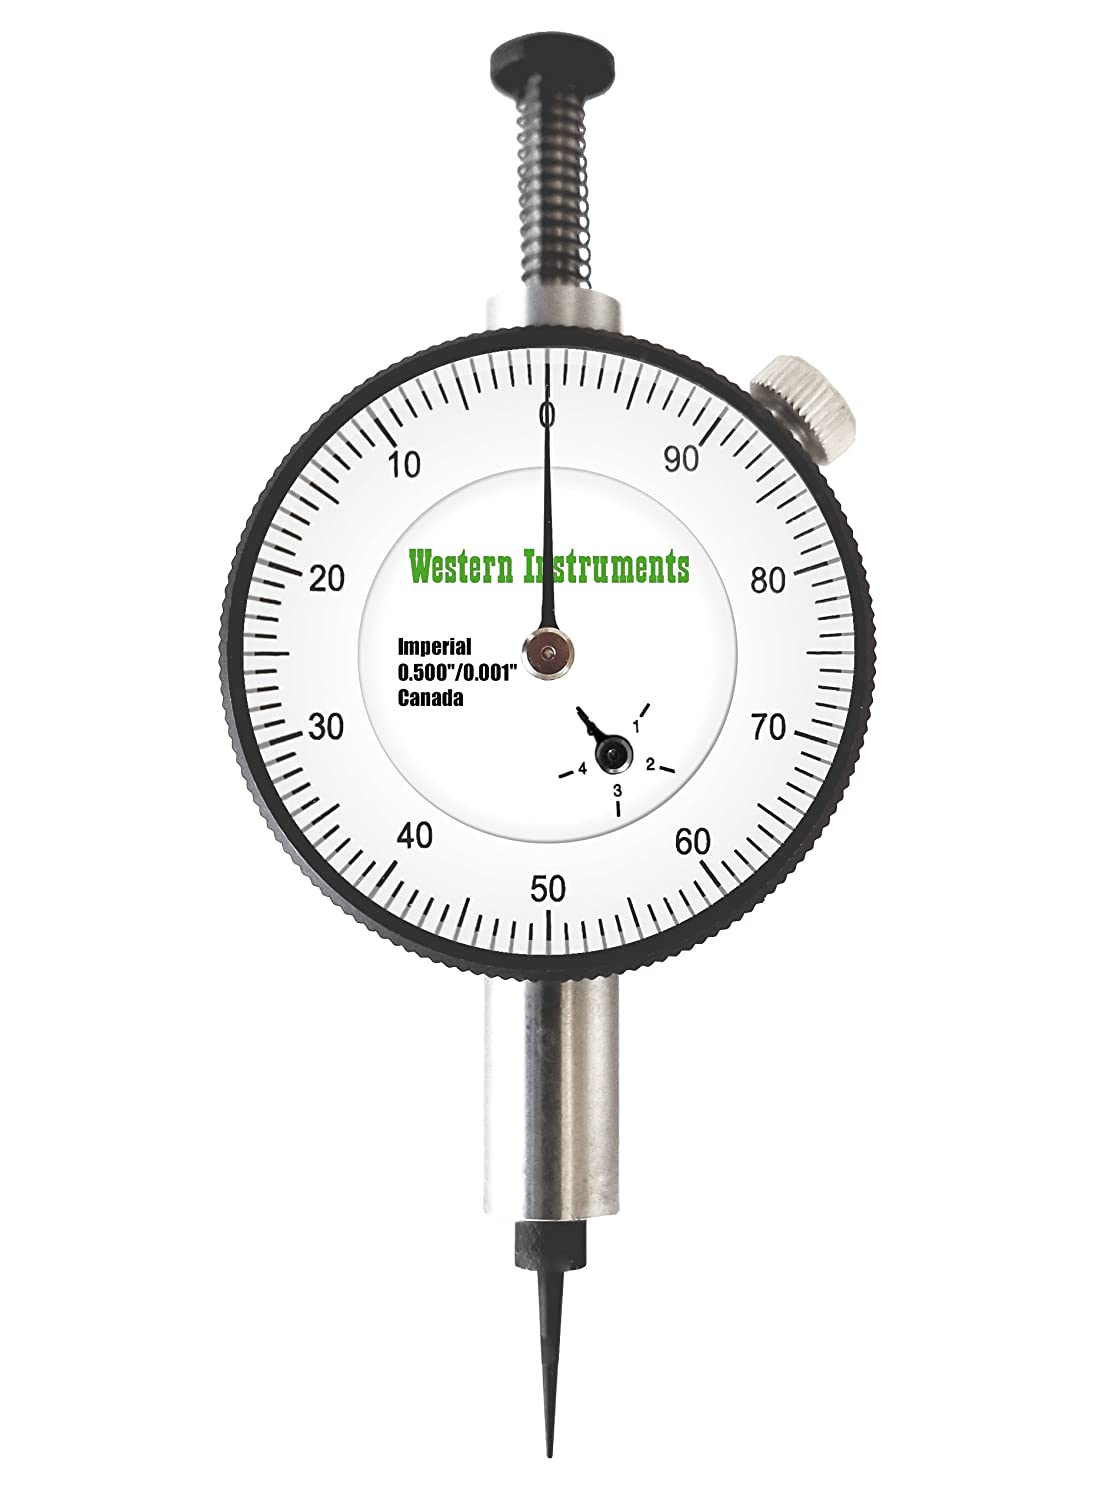 4.75 121 mm Range: 0.0-0.5 Resolution: 0.001 Blade Dial Diameter: 1.4 Western Instruments N88-5-I Reaching Pit Gauge with Inch Dial Indicator